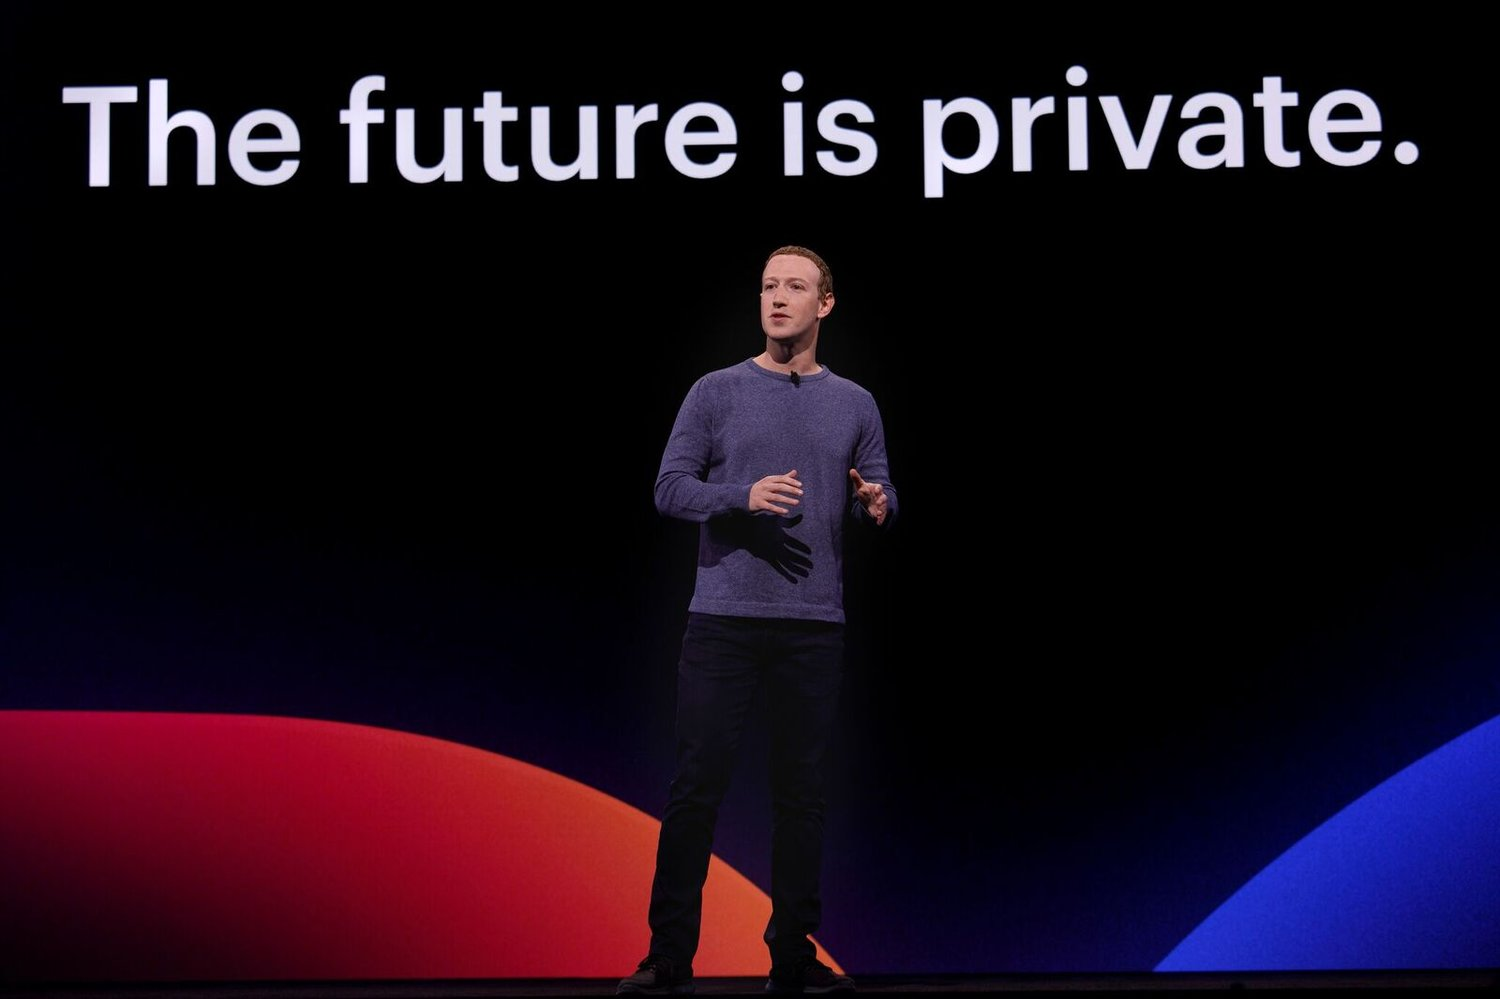 future-is-private.jpeg